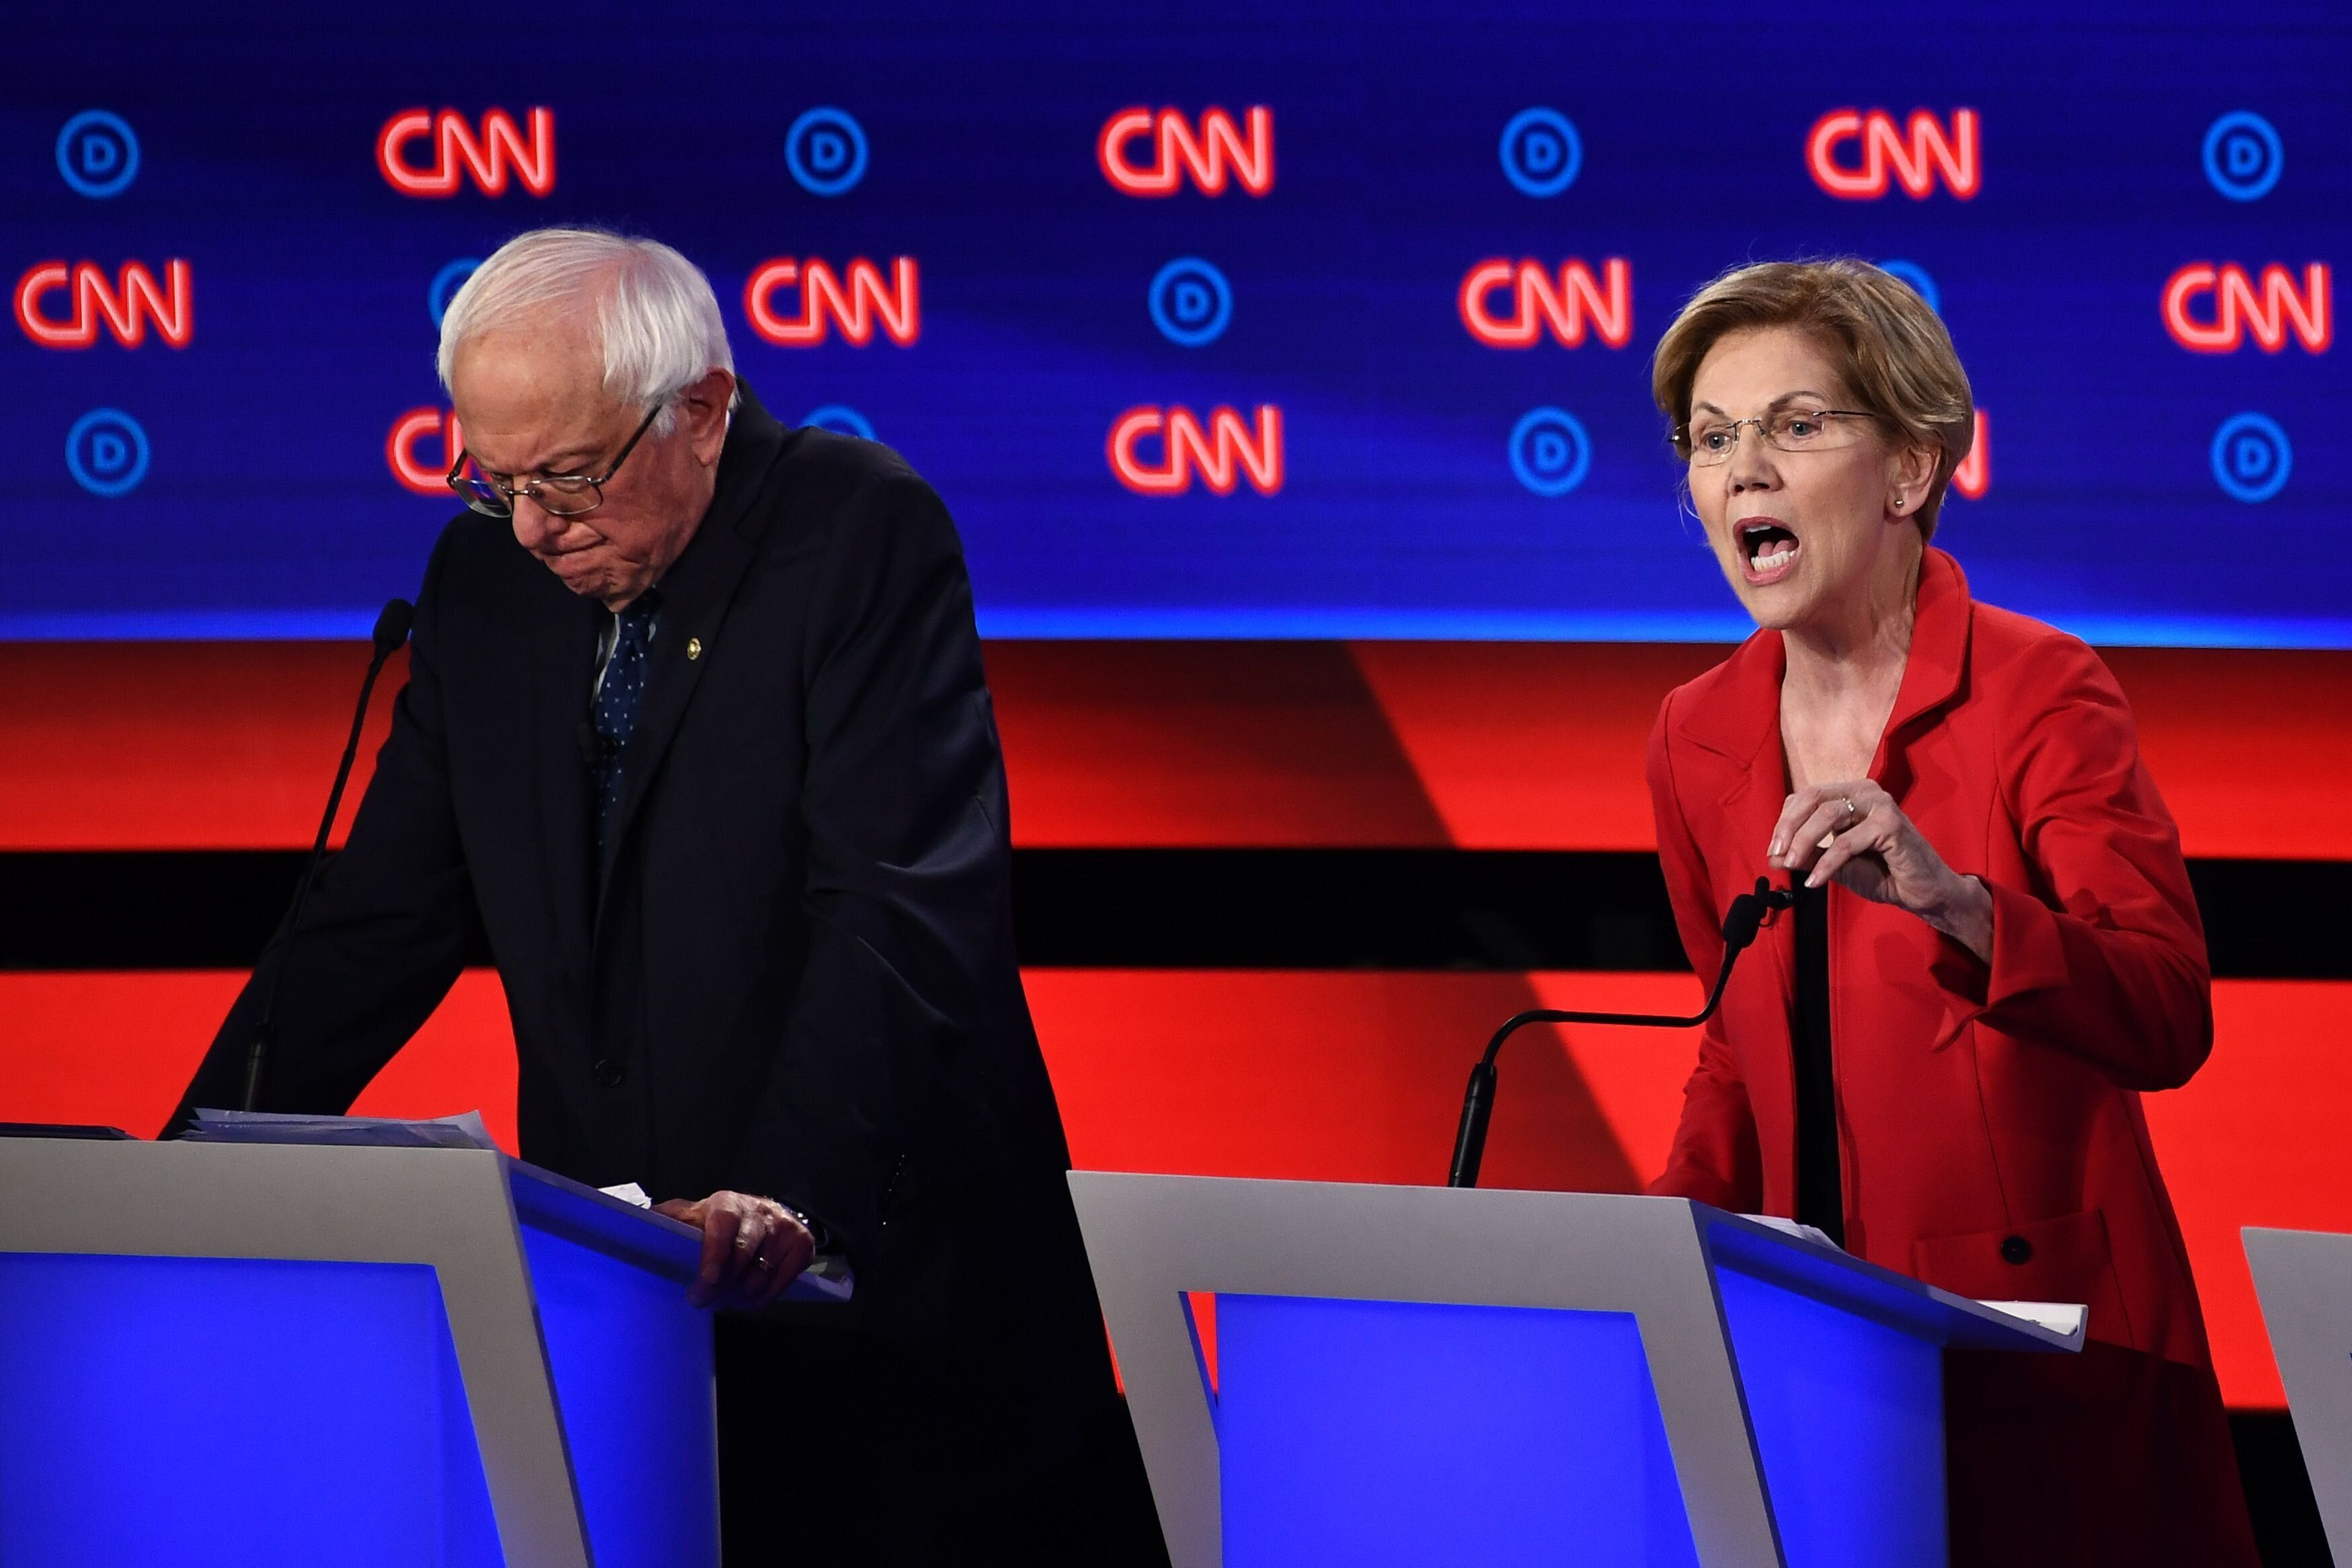 Sens. Bernie Sanders and Elizabeth Warren appeared to stick to their script of civility with each other.